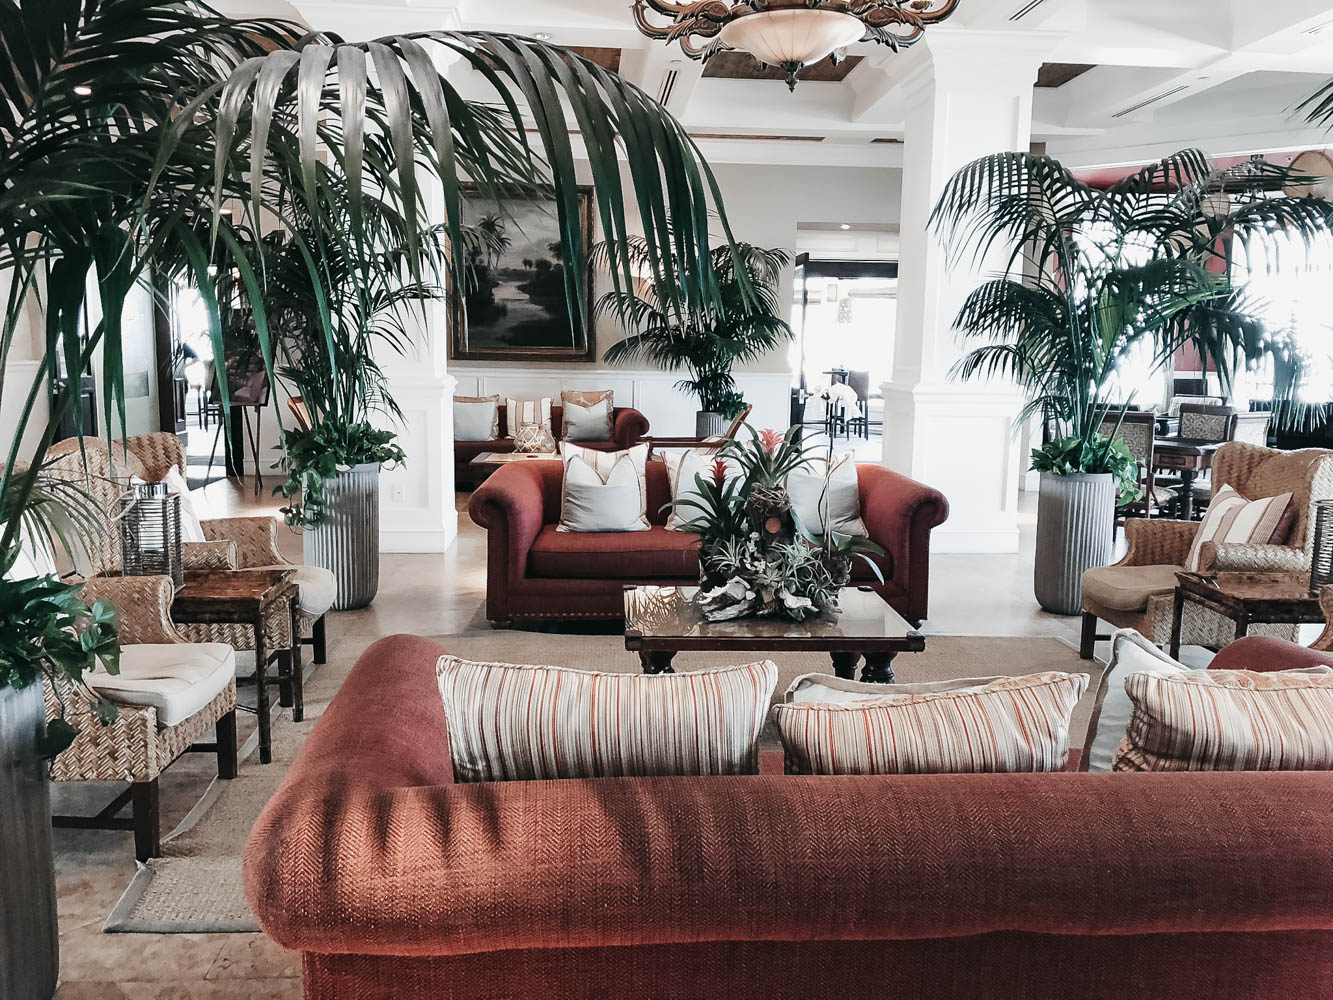 Maroon couches and palms in Florida lobby